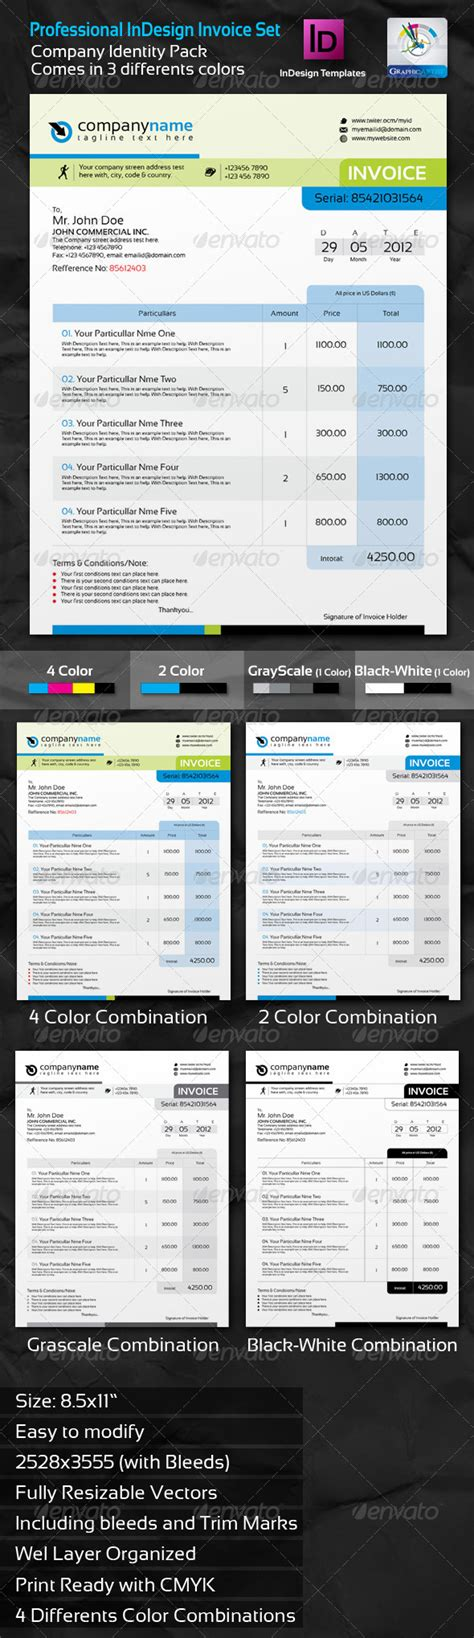 professional invoice indesign template set graphicriver